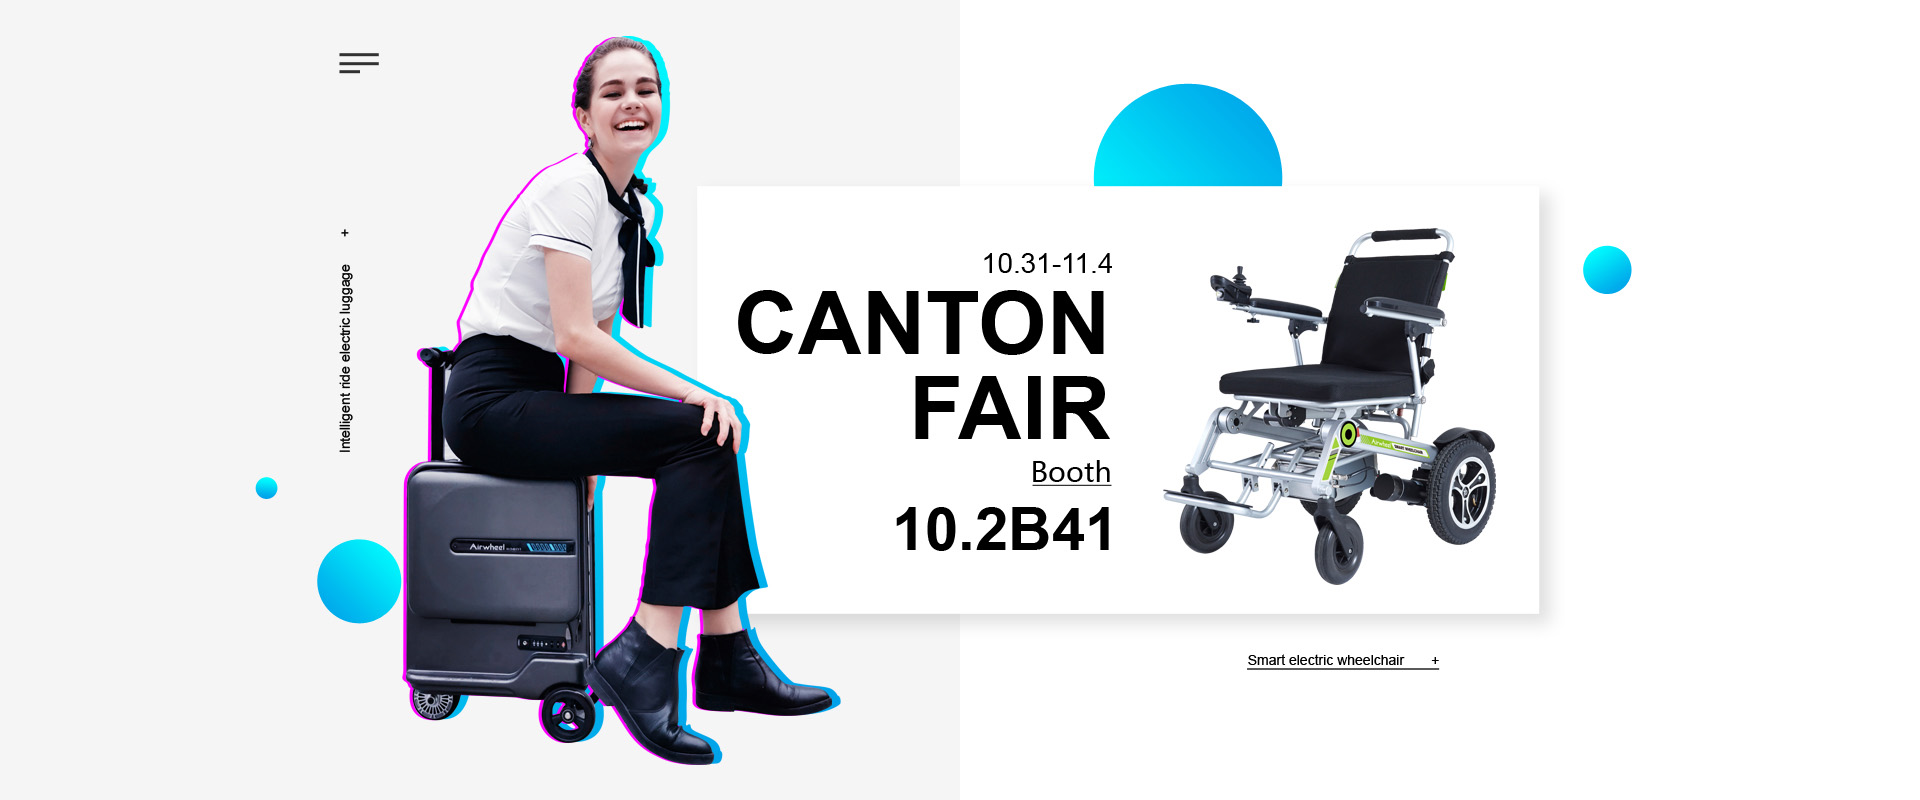 Airwheel electric wheelchair,